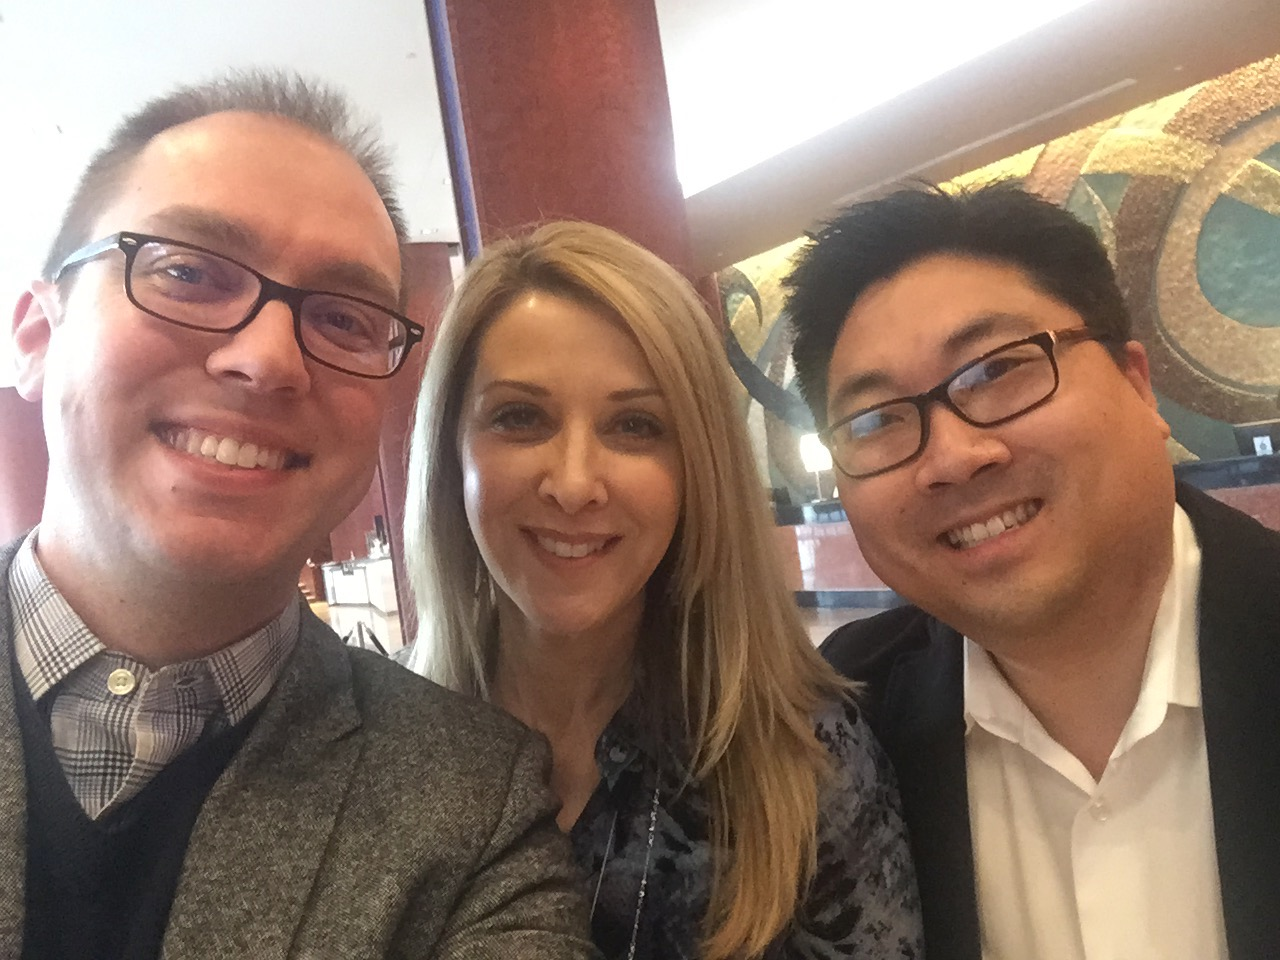 Matt Reichert, Lorraine Hess, and Zack Stachowski at the Mid-Atlantic Congress in Baltimore, Maryland (2019).